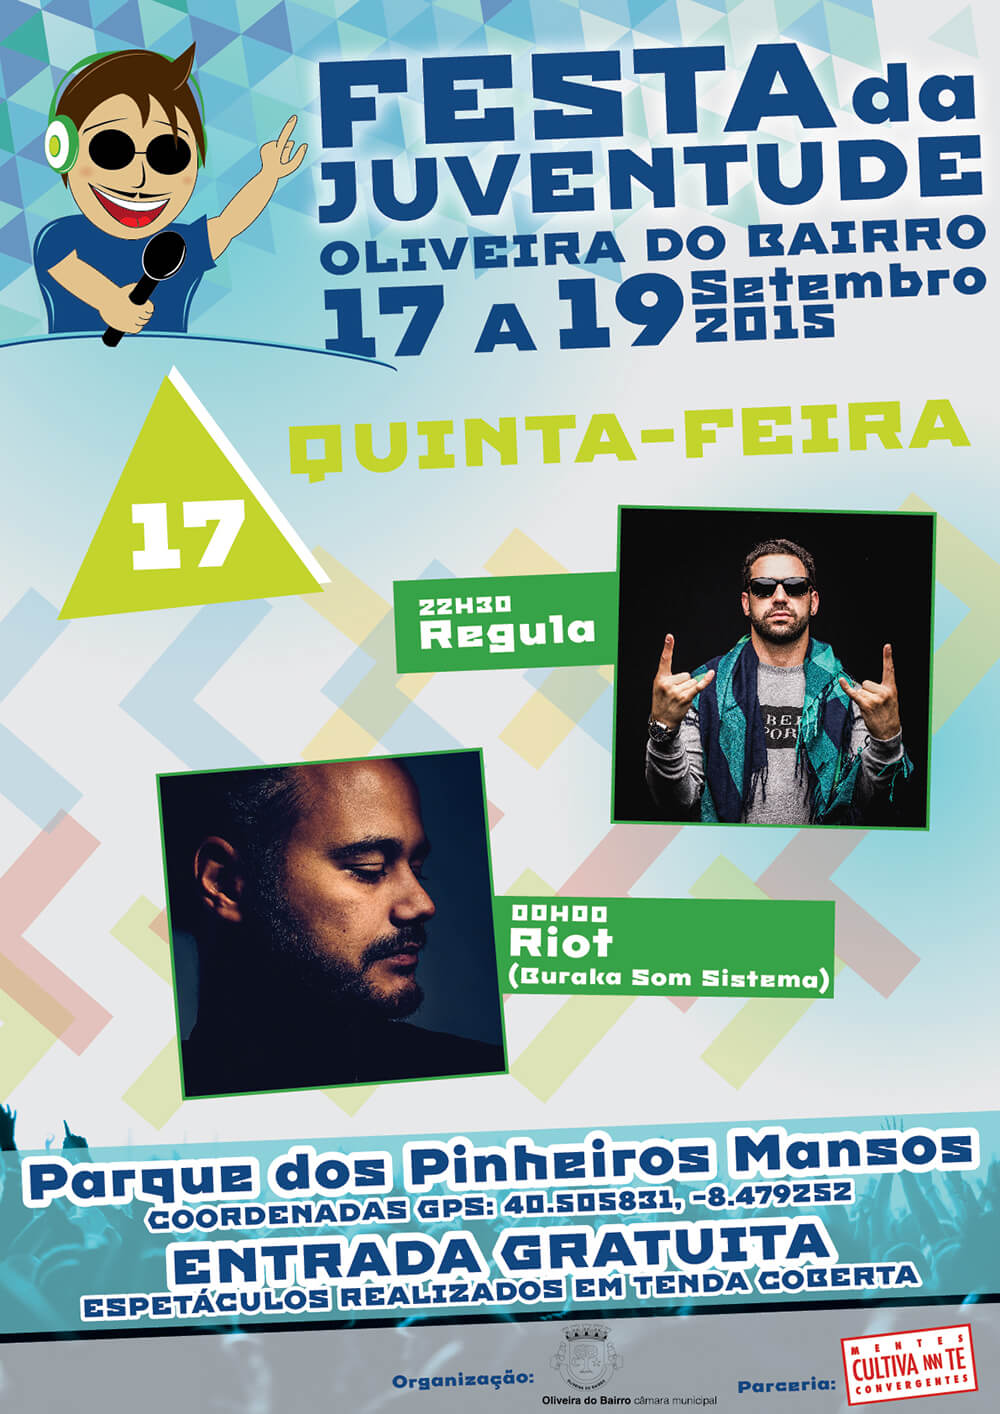 Festa da Juventude de Oliveira do Bairro - Poster for the 17th day | Luis Serra Freelancer